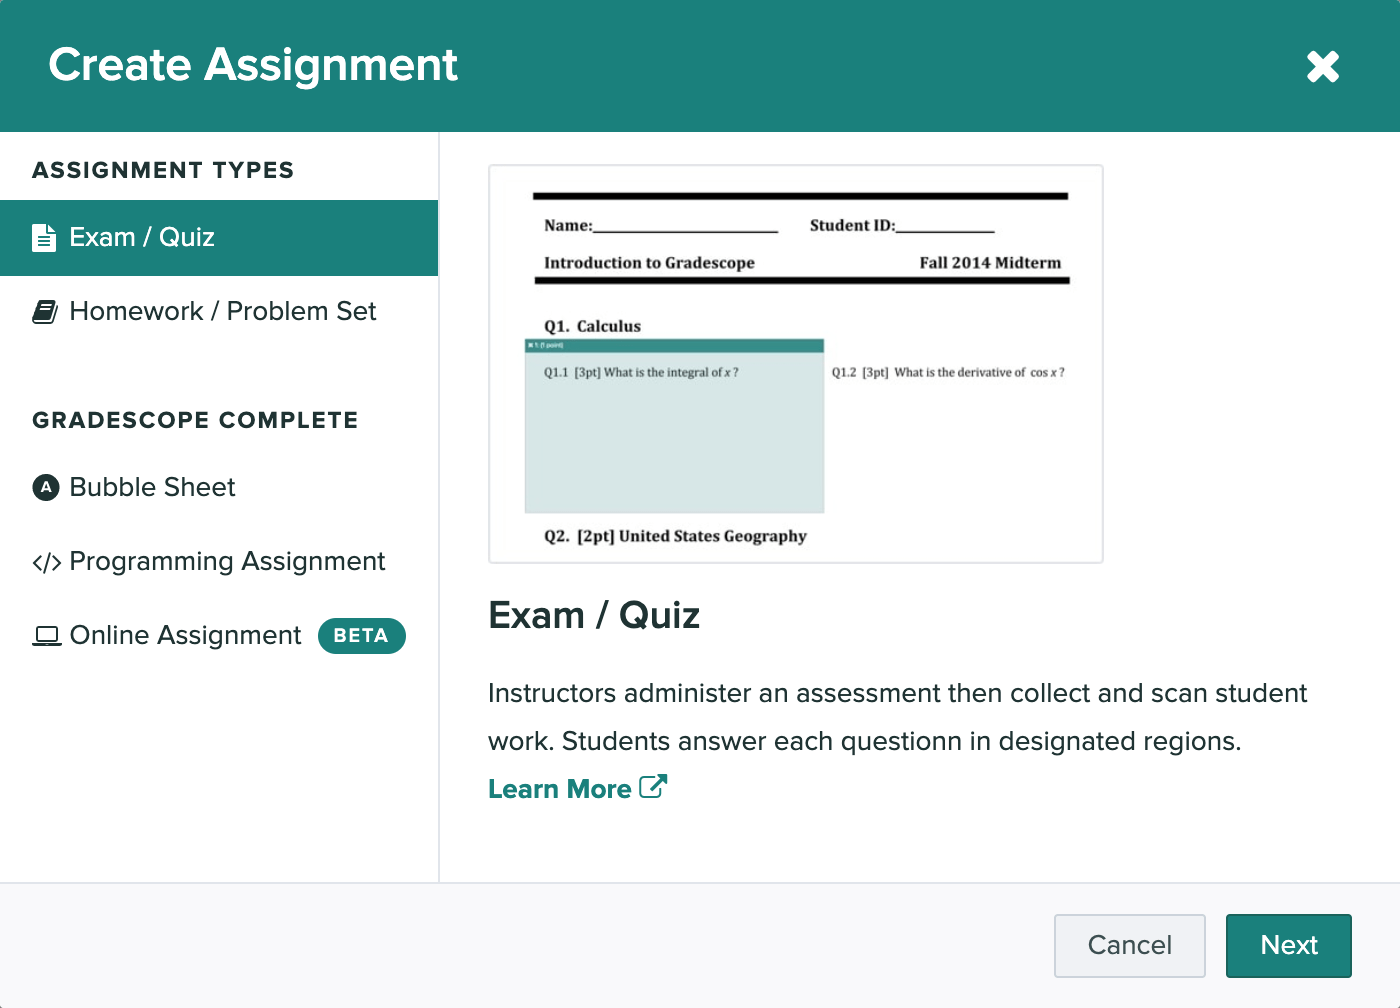 The create assignment modal is open and the exam / quiz option is selected.